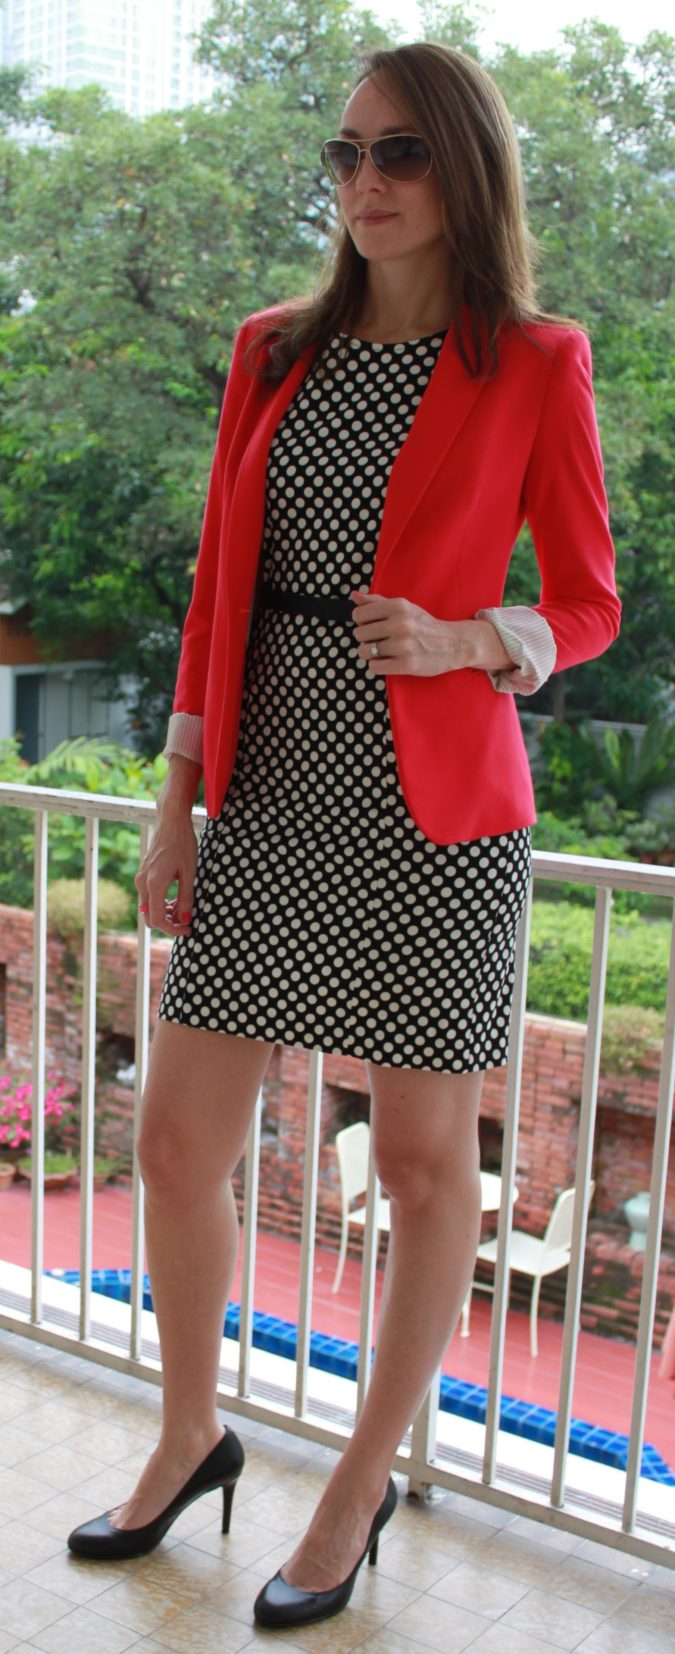 Black-White-and-Red-Outfit..-1-675x1654 +45 Stylish Women's Outfits for Job Interviews for 2020